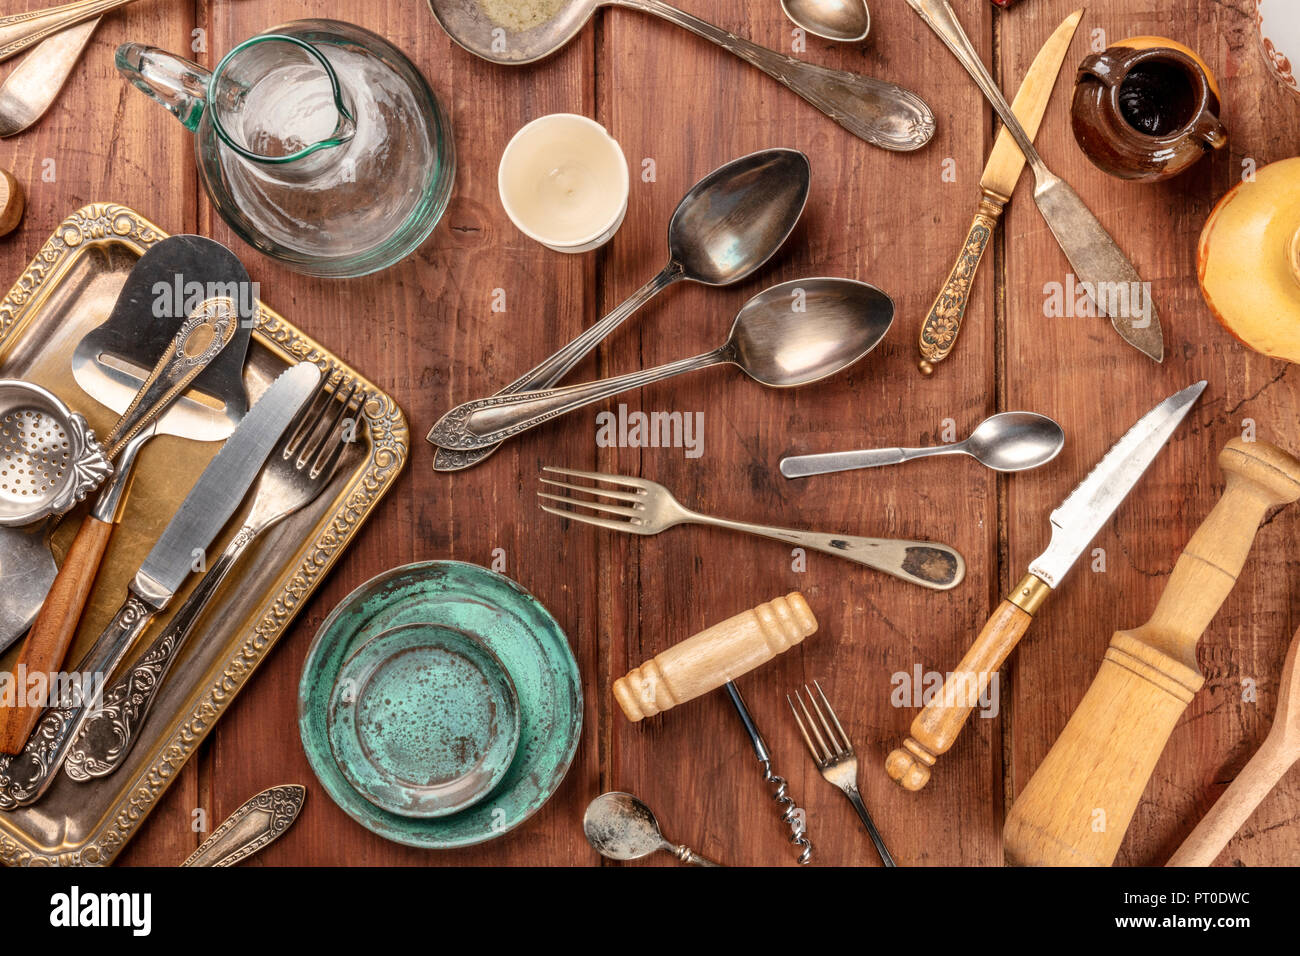 An overhead photo of many vintage kitchen objects and cutlery from an old restaurant, flea market stuff on a wooden background - Stock Image